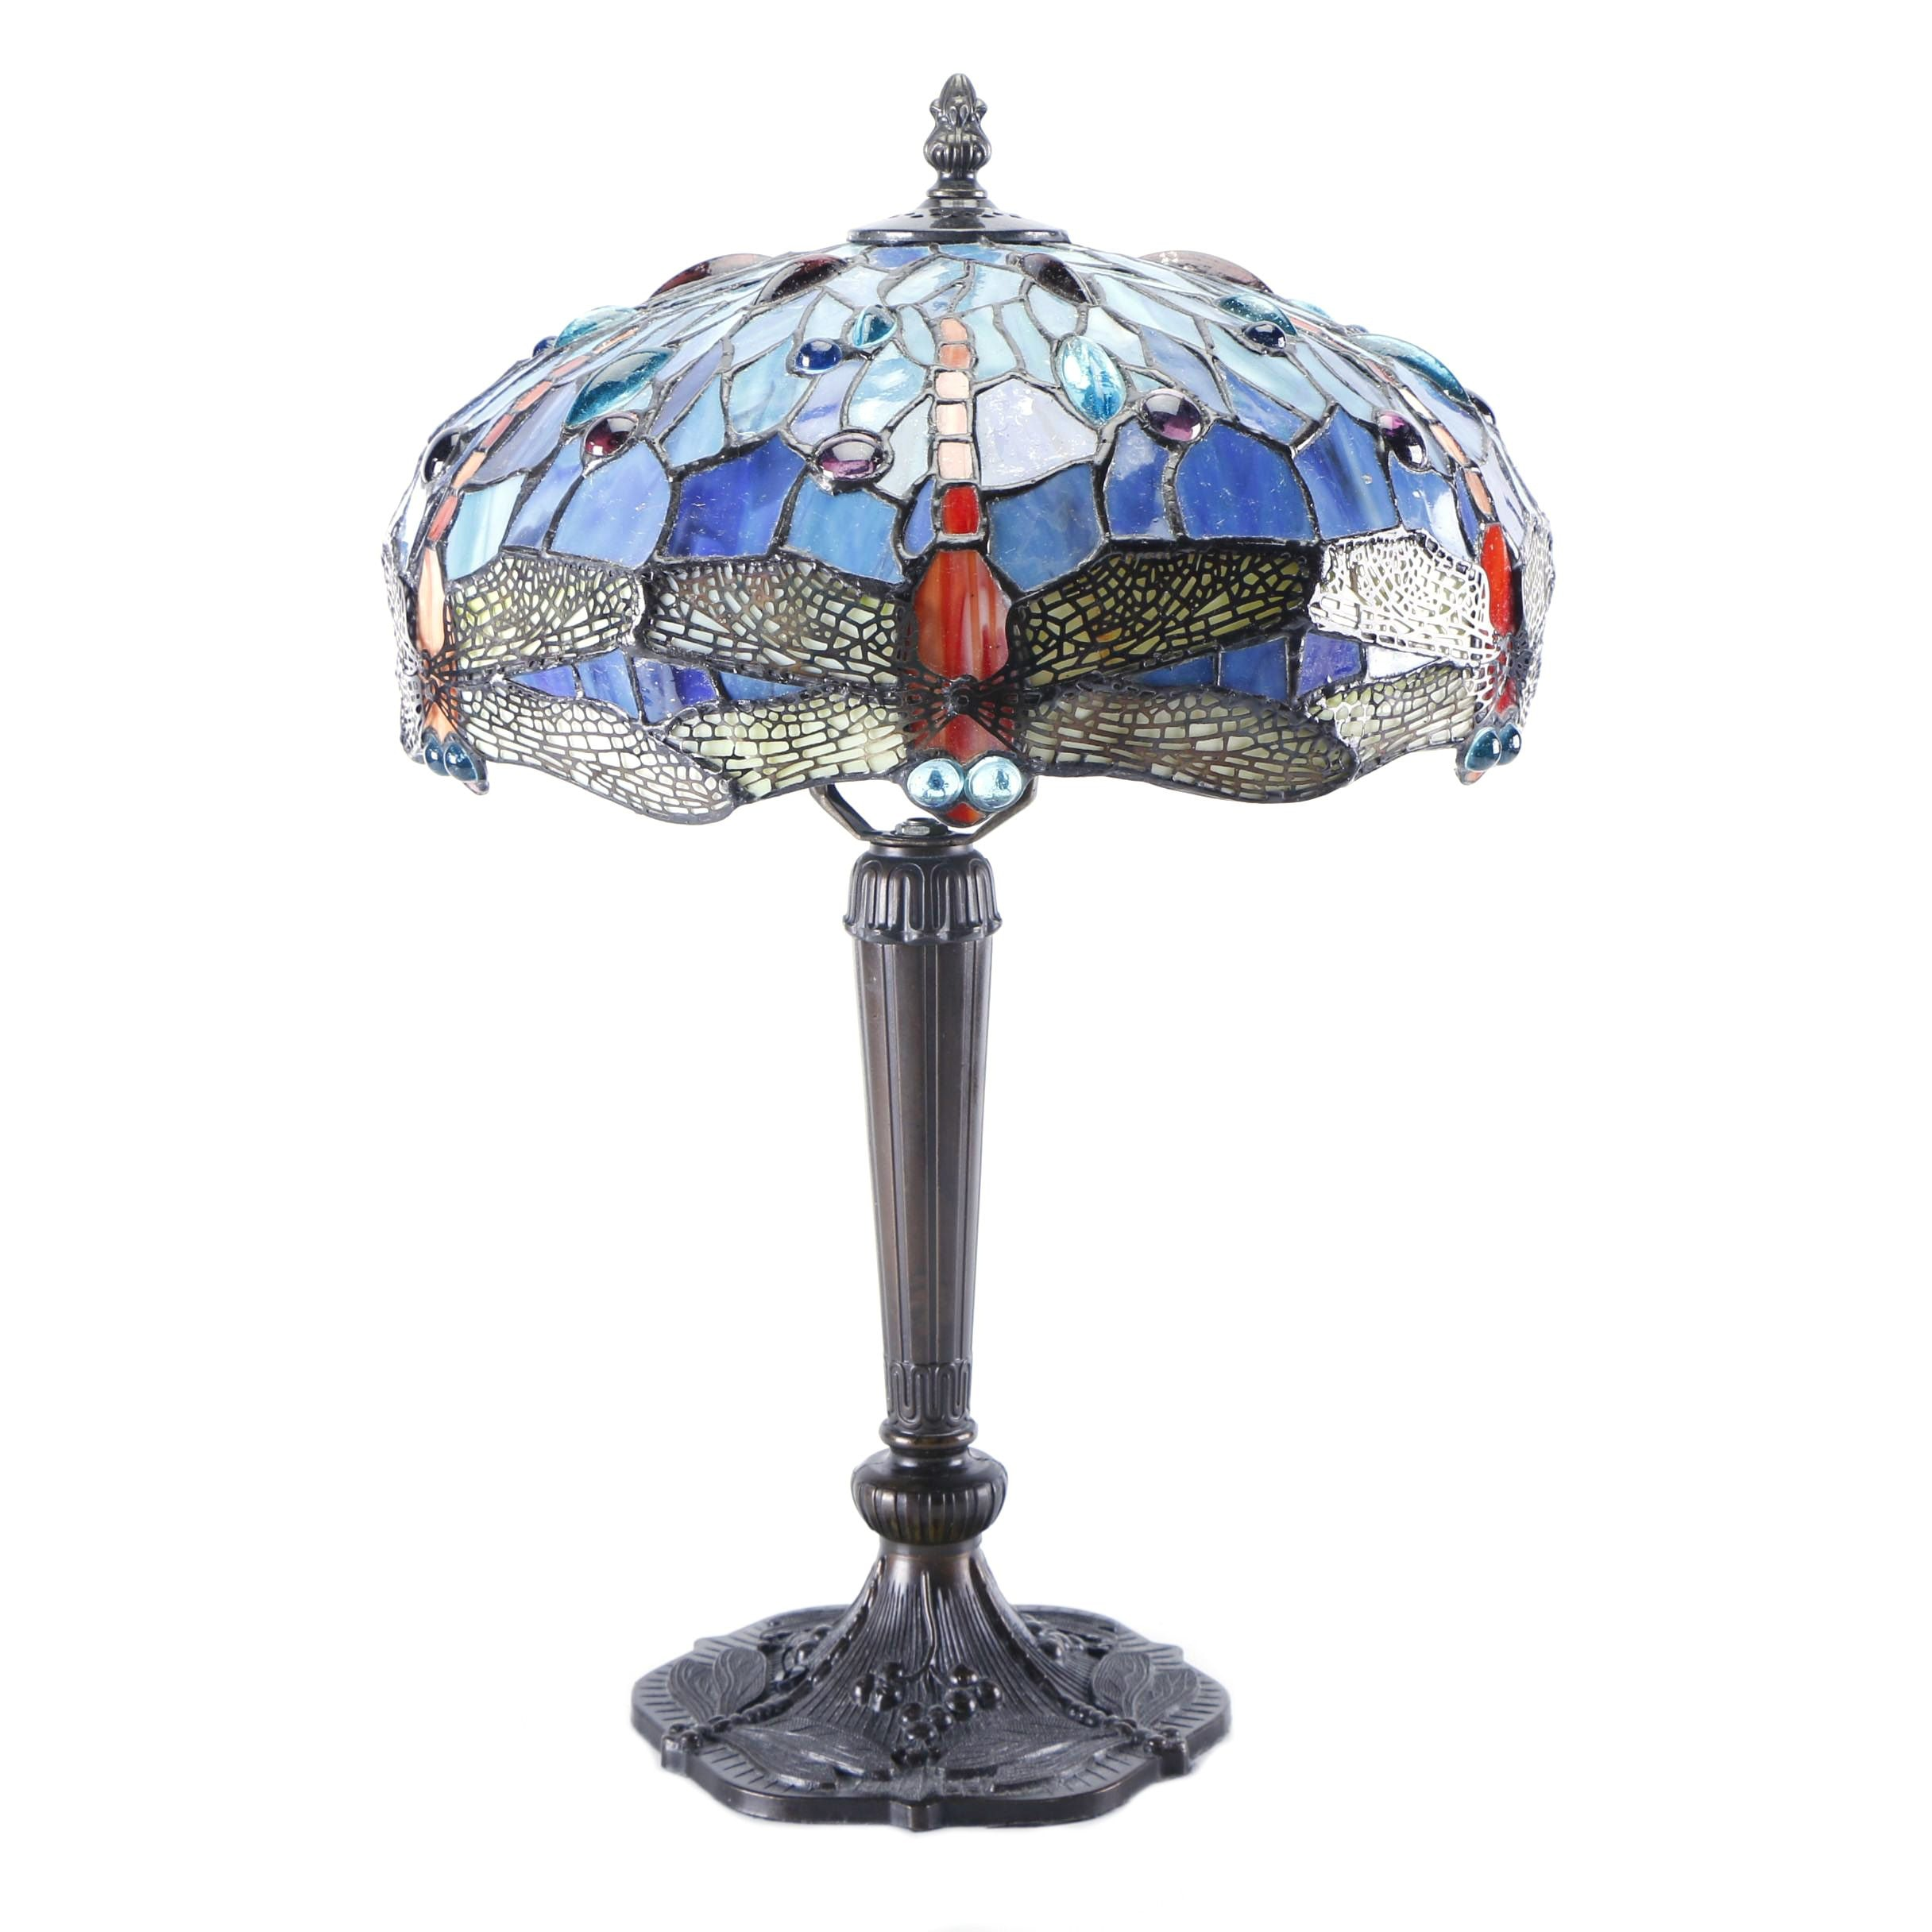 Tiffany Style Dragonfly Table Lamp Base and Shade